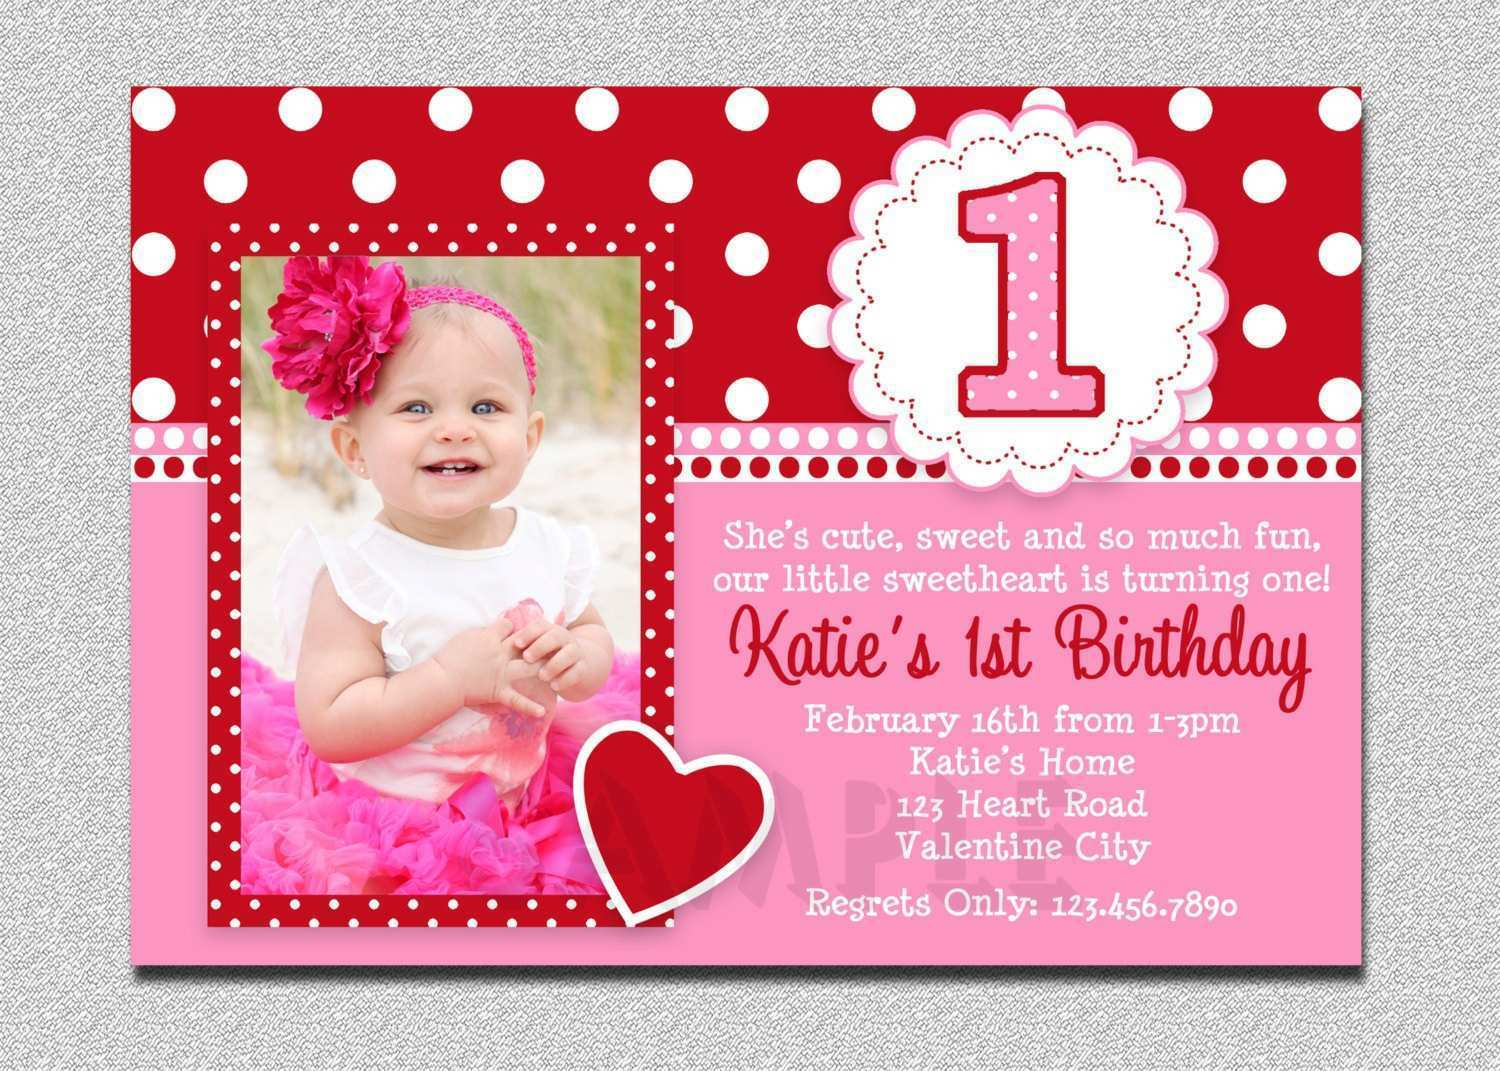 68 Adding 1St Birthday Invitation Card Template Online Photo with 1St Birthday Invitation Card Template Online